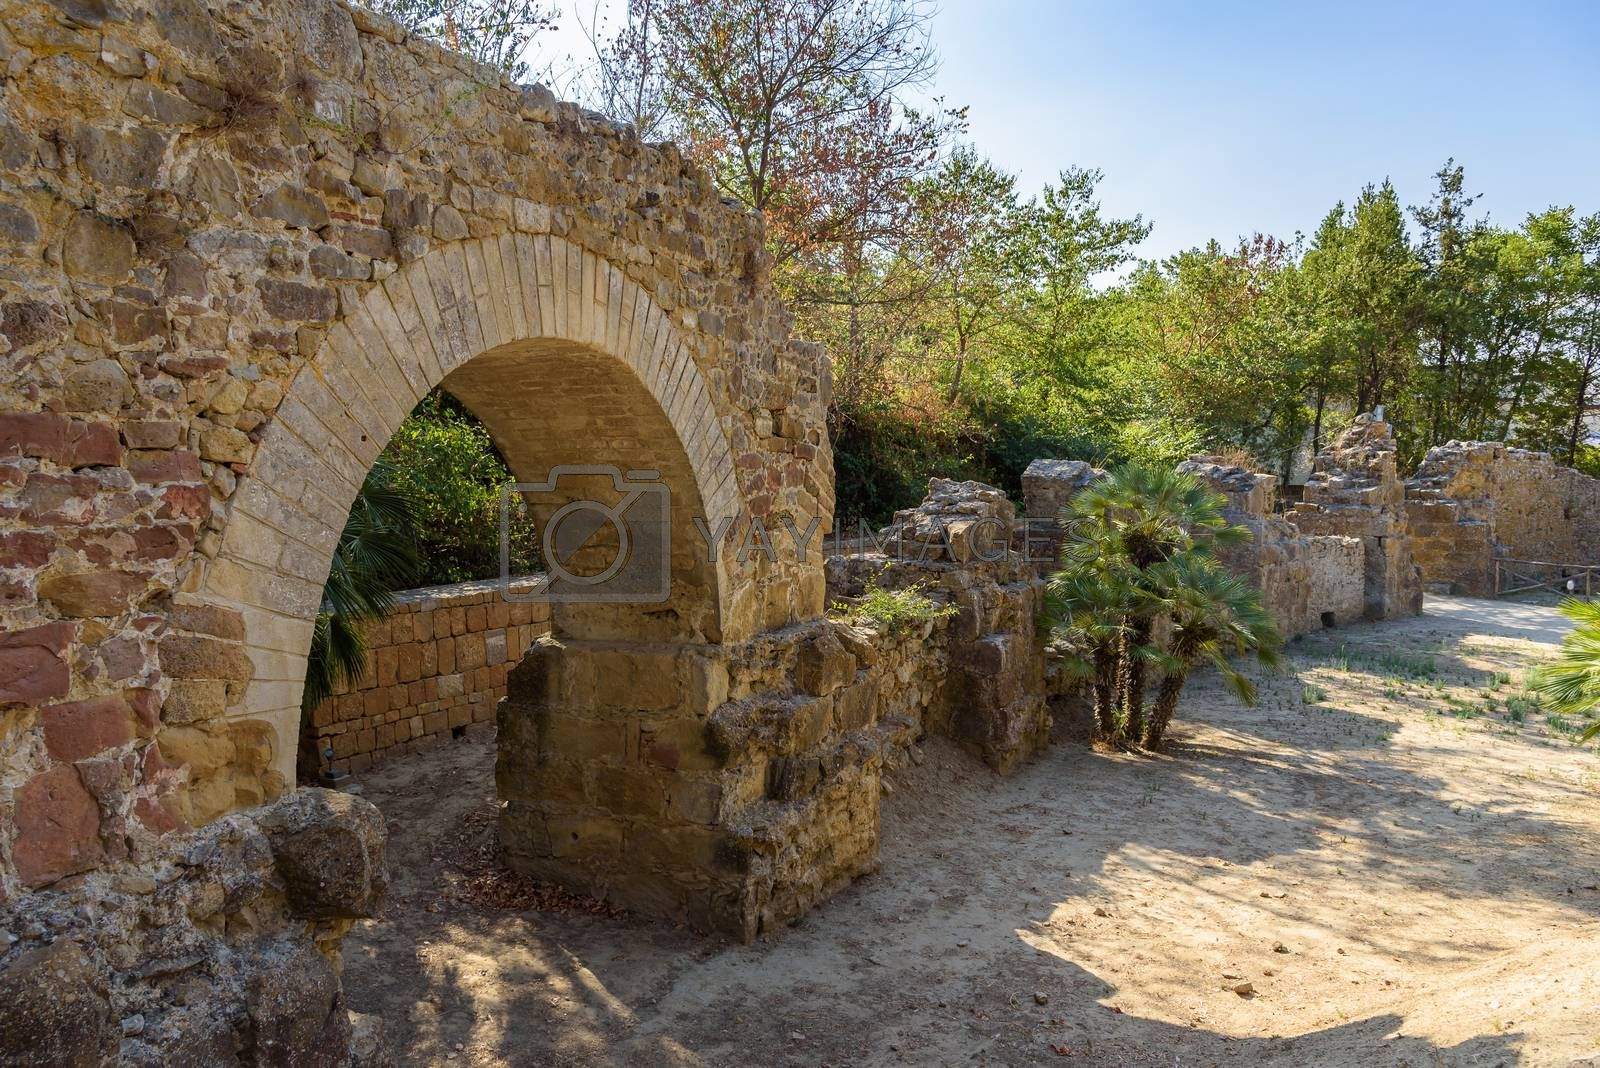 Royalty free image of Ruins of the ancient Villa del Casale on Sicily by mkos83